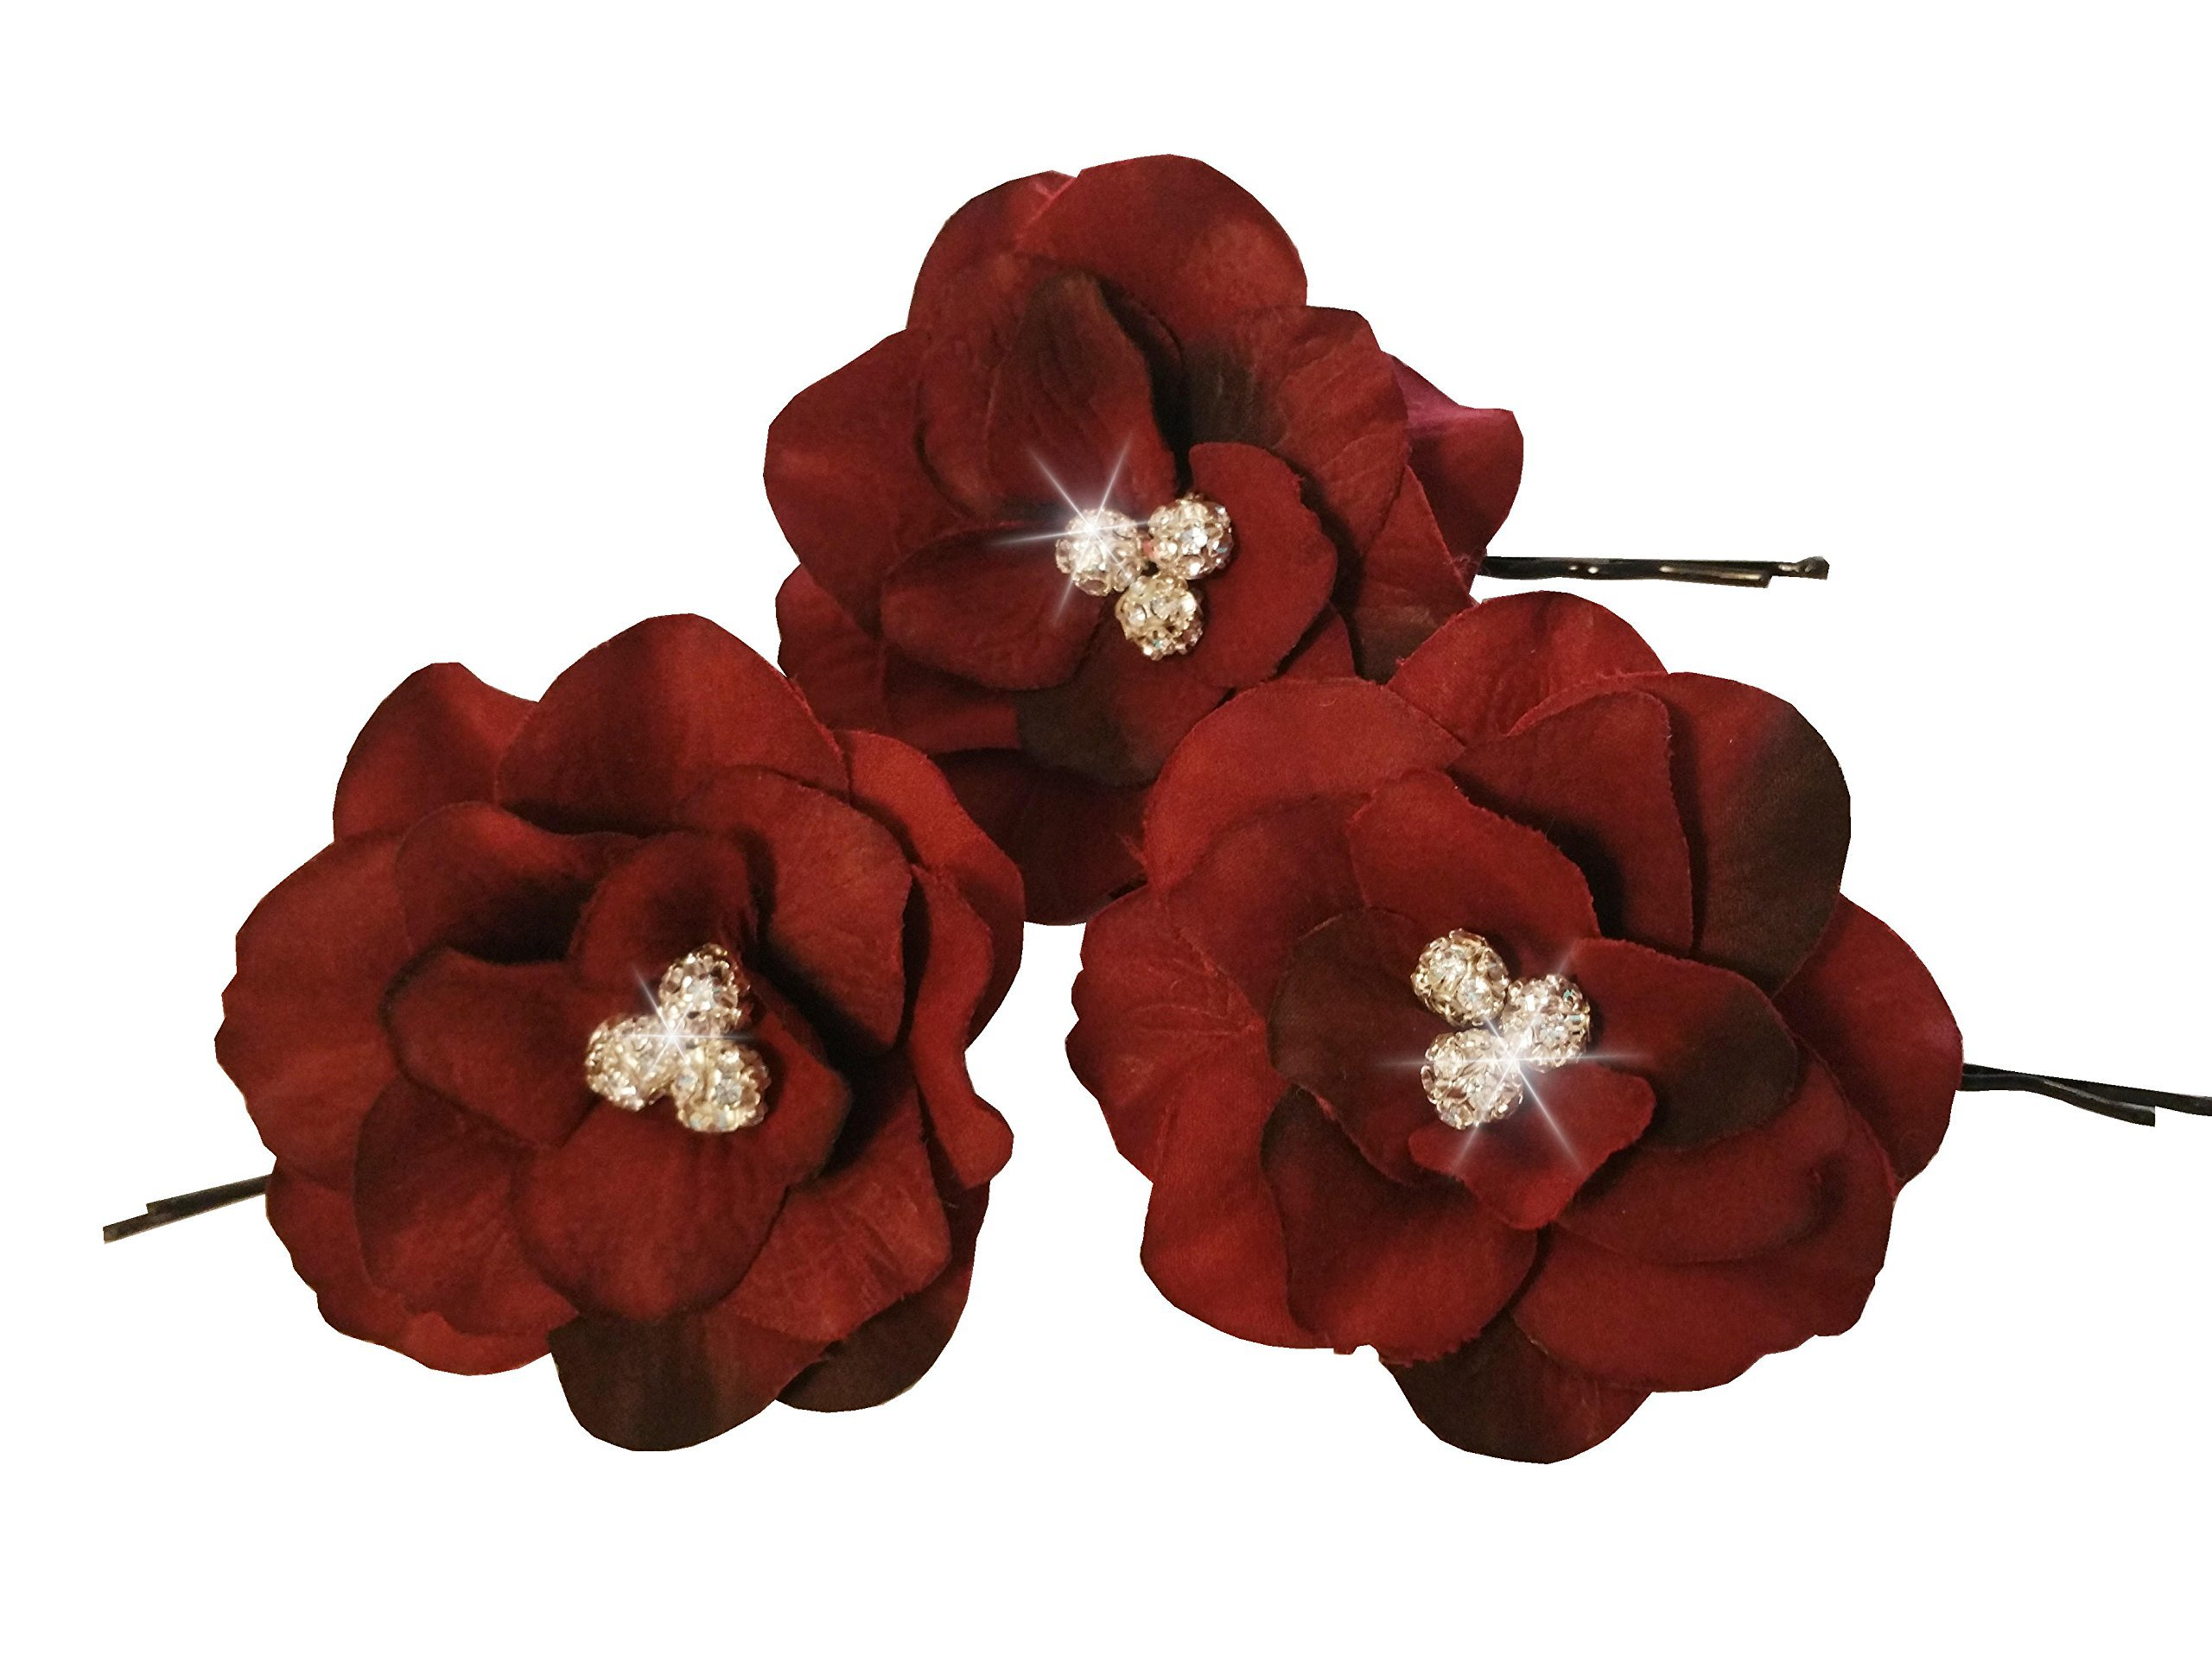 Olini Handmade Set of 3 Burgundy Flower Hair Pins with Rhinestones, Bridesmaids Hair Pins, Handcrafted Pins